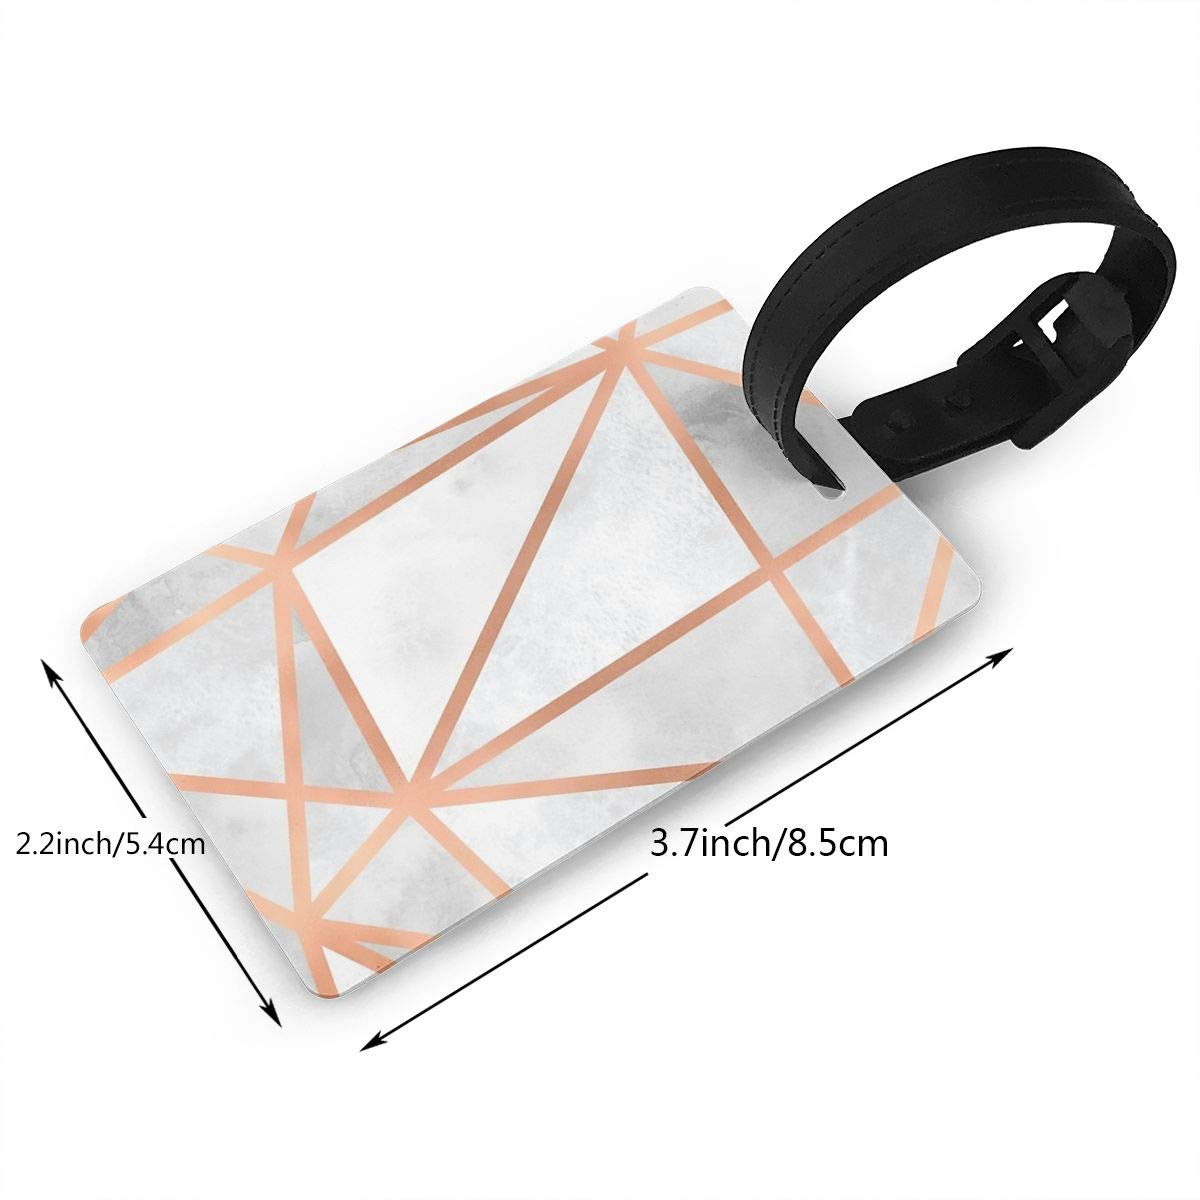 Set of 2 White /& Copper Geo Luggage Tags Suitcase Labels Bag Travel Accessories